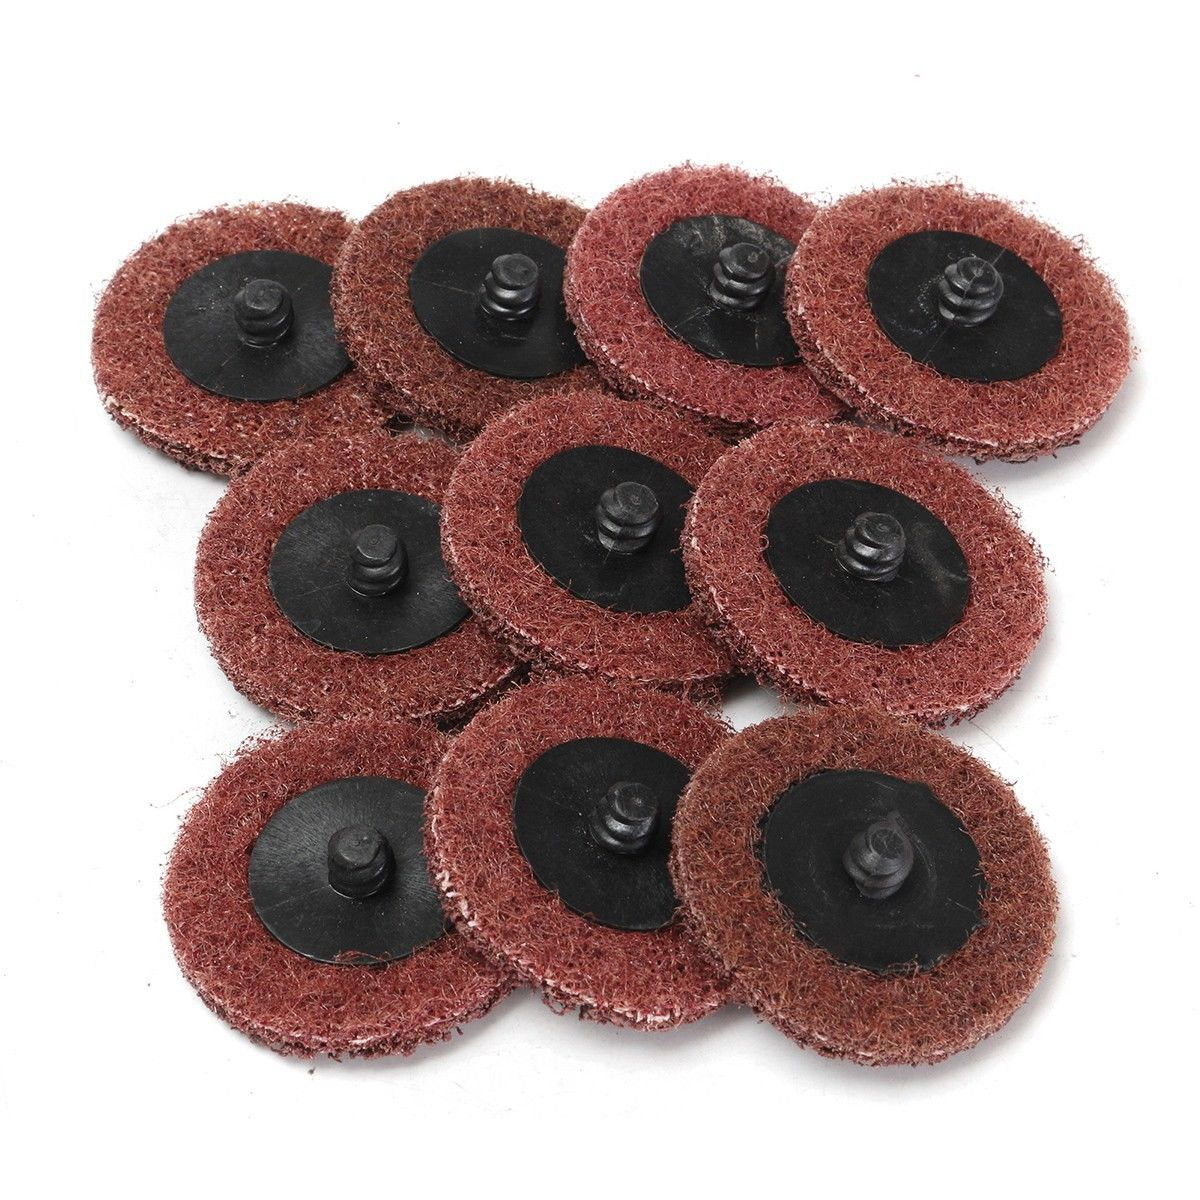 10pcs 120 Grit 50mm/2 Sanding Discs Roloc Roll Lock Surface Medium Coarse Sanding Disc Pads for Metal Polishing Cleaning Mayitr 50pcs set 2 roloc sanding disc scotch brite roll lock coarse surface conditioning for stainless steel standard alloyed steel